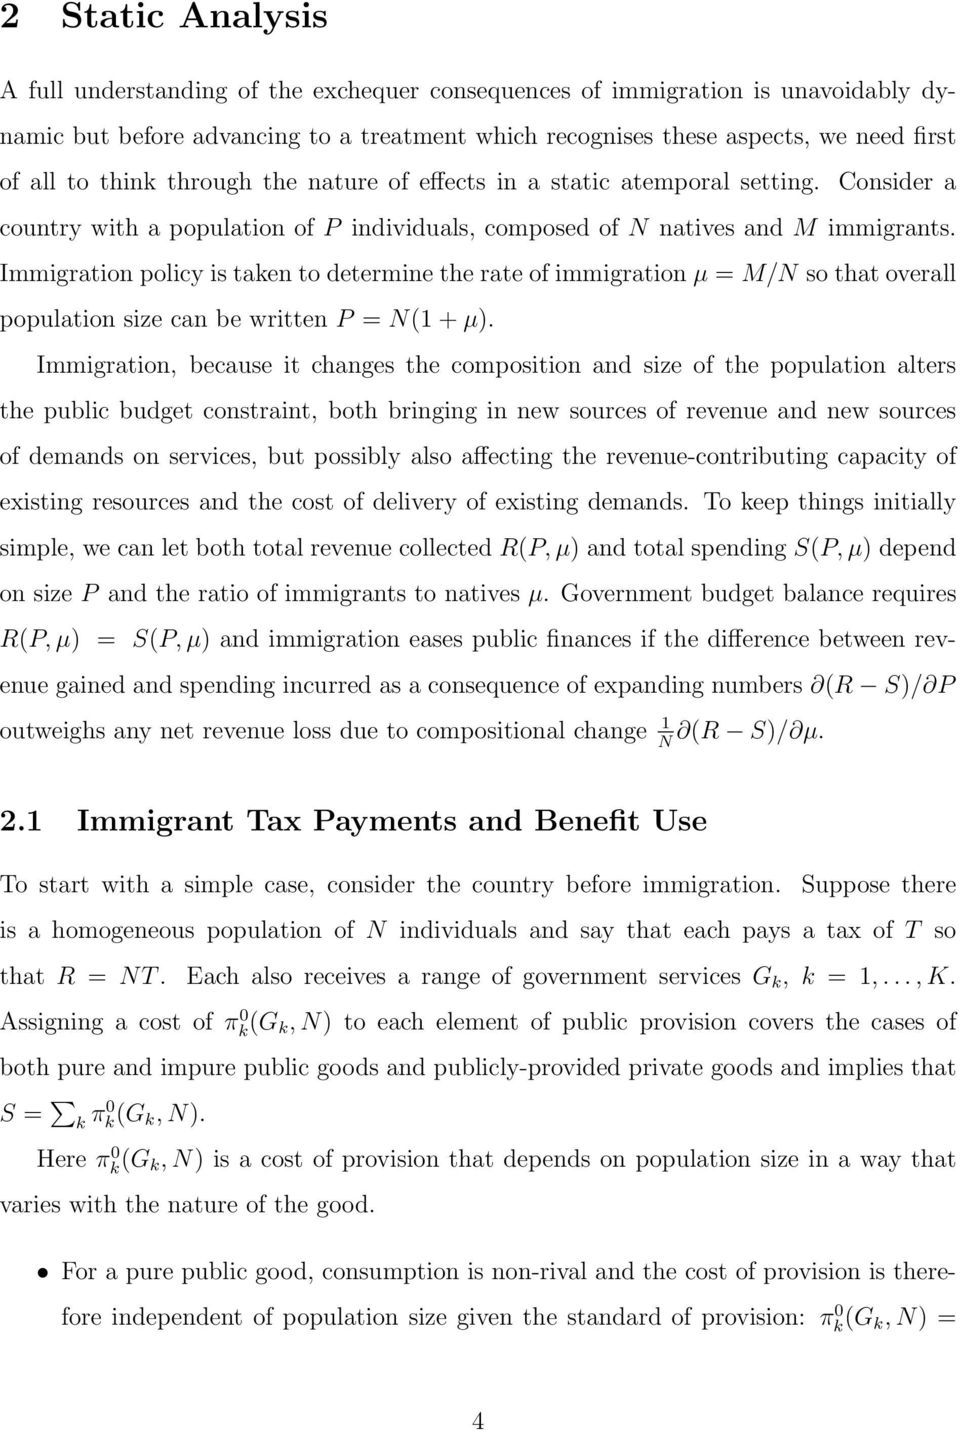 Immigration policy is taken to determine the rate of immigration µ = M/N so that overall population size can be written P = N(1 + µ).